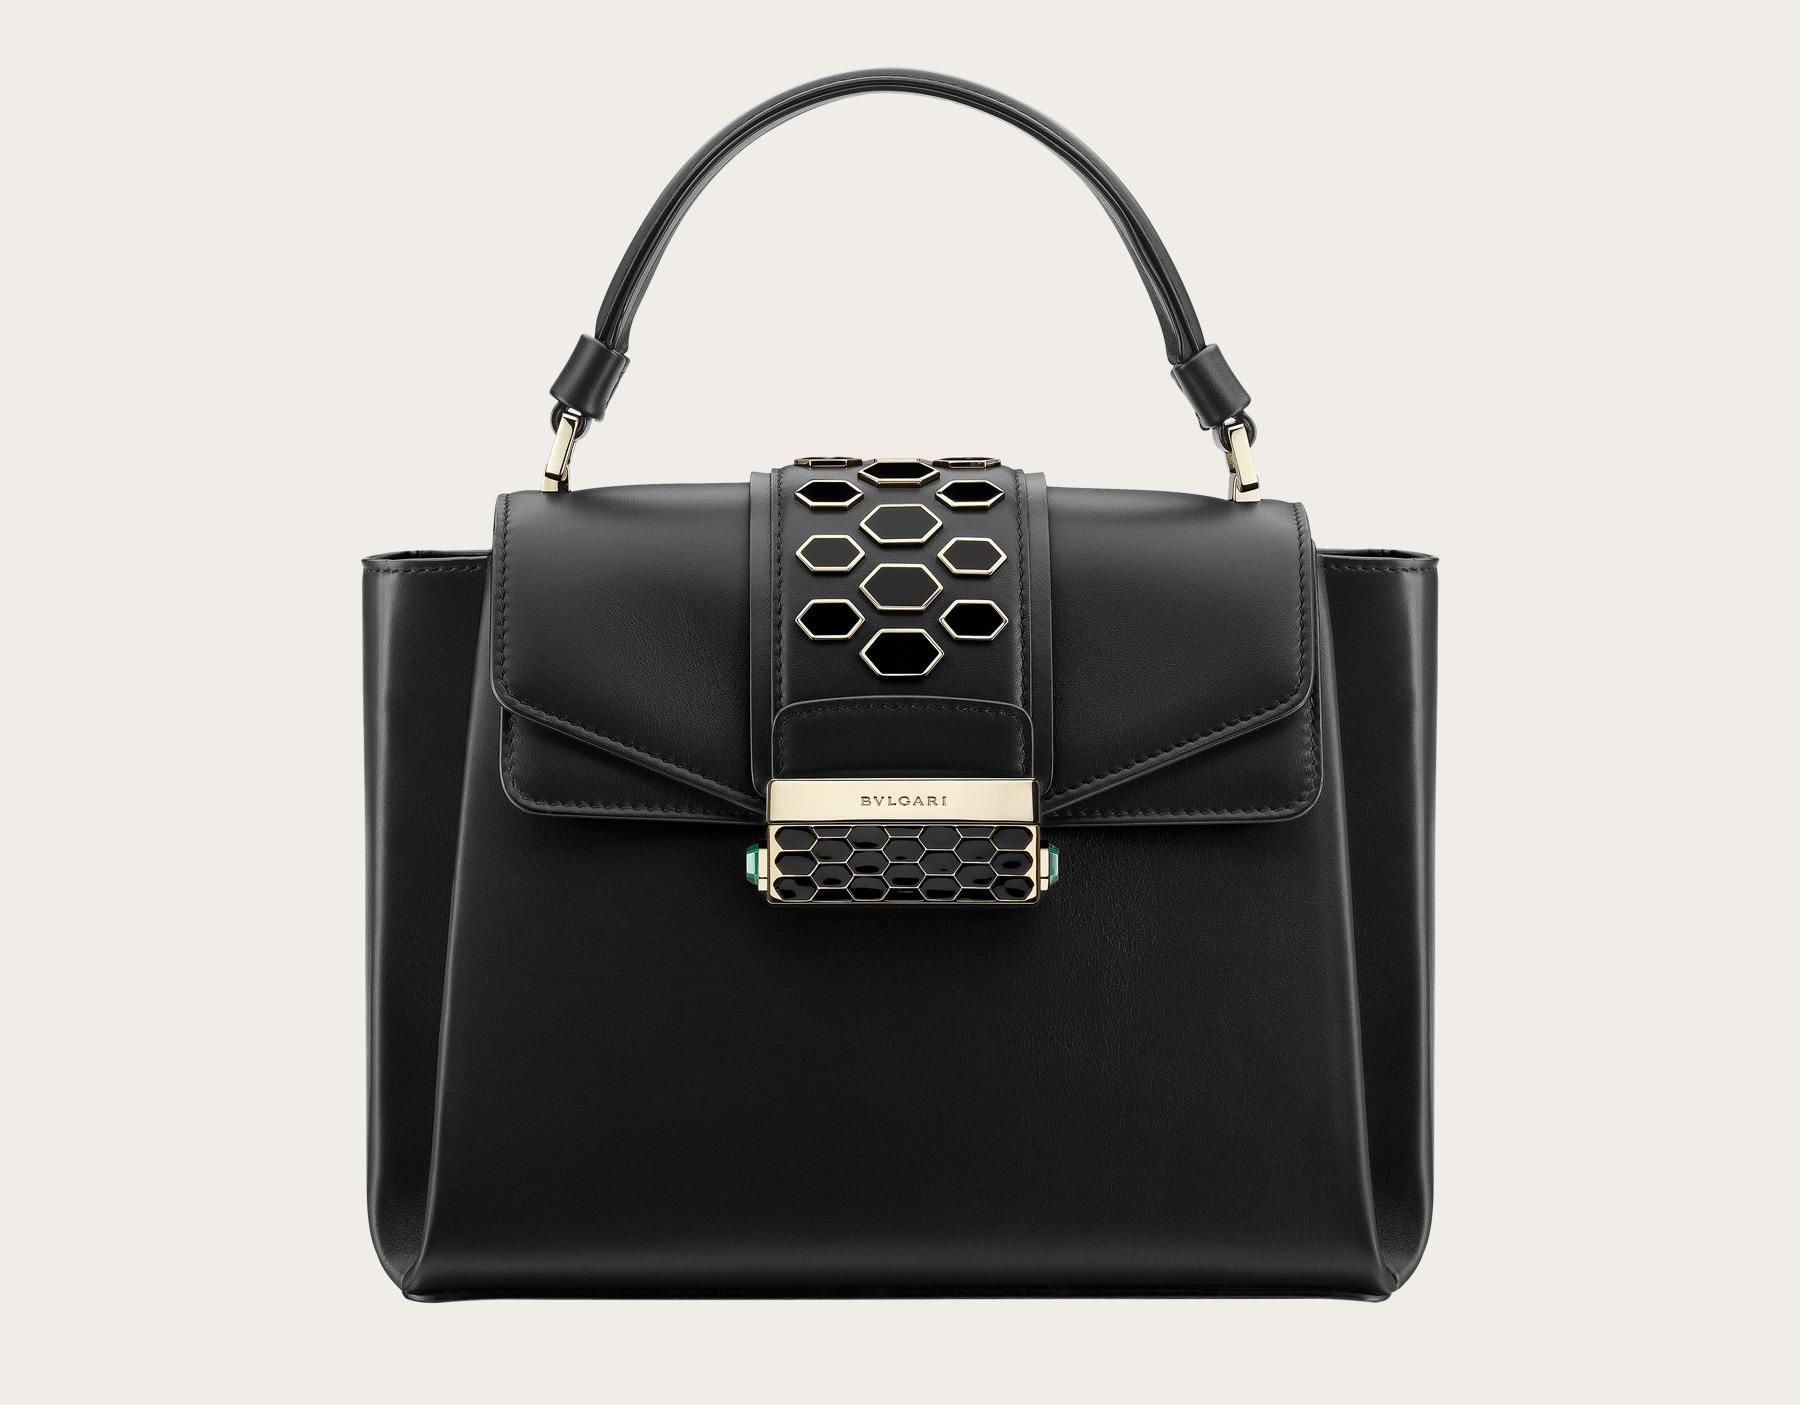 128e4c3db83b Top Handle bag Serpenti Viper 282366 - Discover BVLGARI s collections and  read more about the magnificent